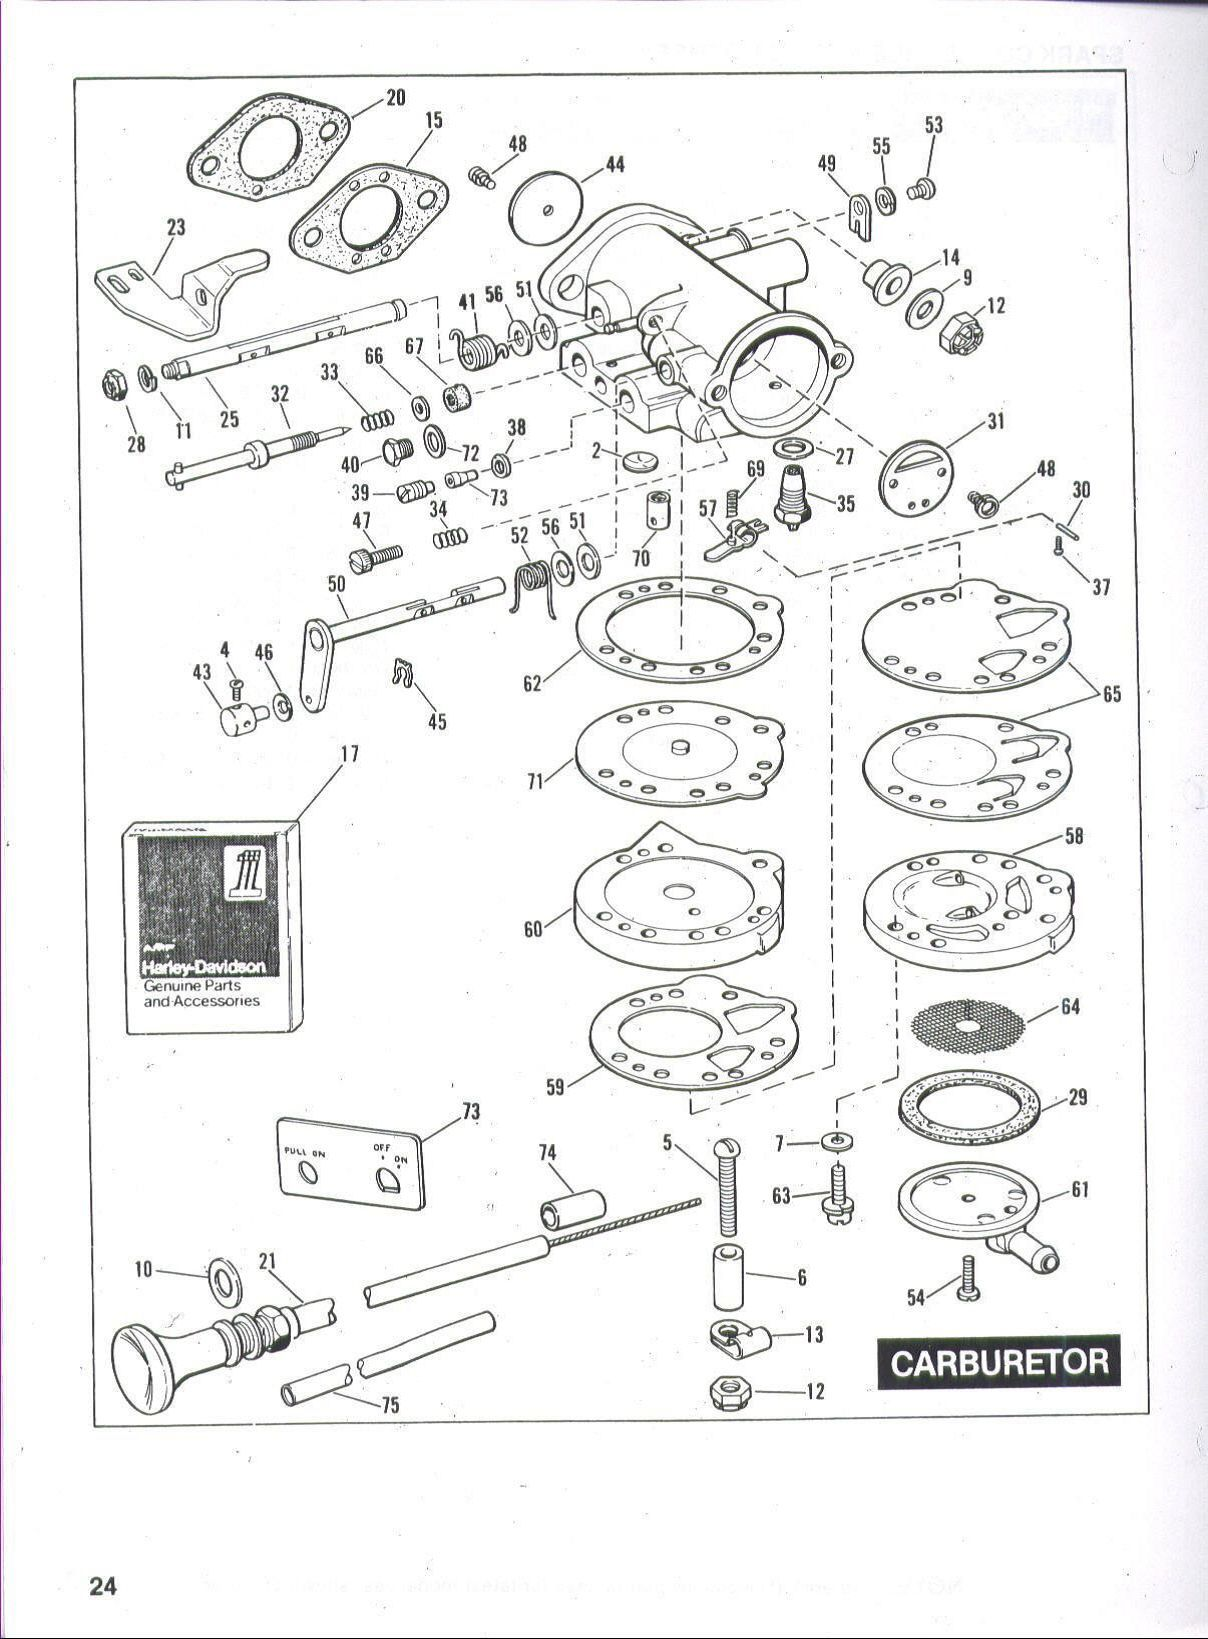 ez go gas engine carborator diagram wiring data rh unroutine co